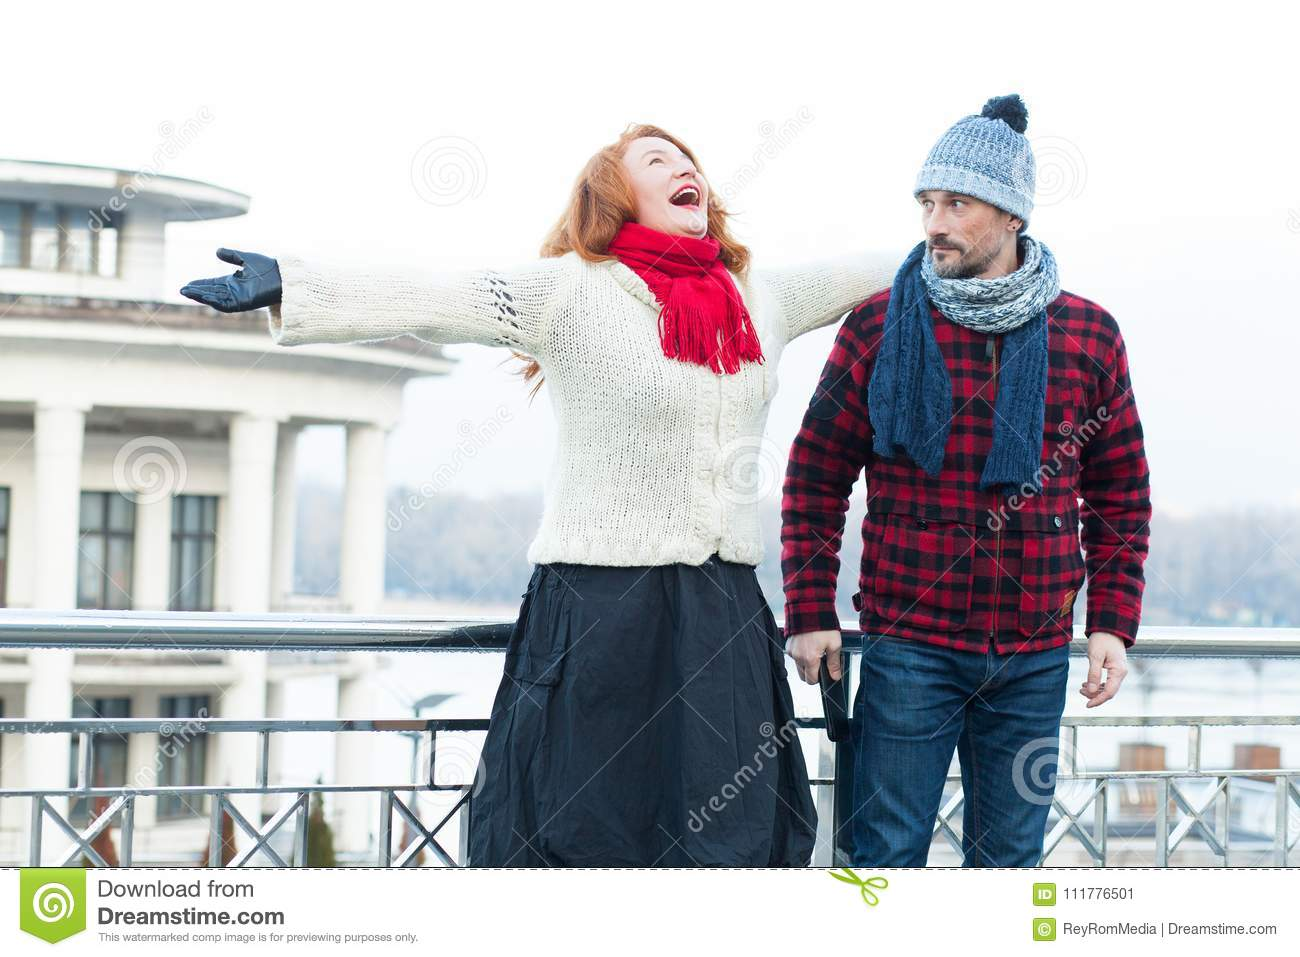 Screaming red hair woman and guy looking to her. Very happy woman crying on the bridge and surprised man.